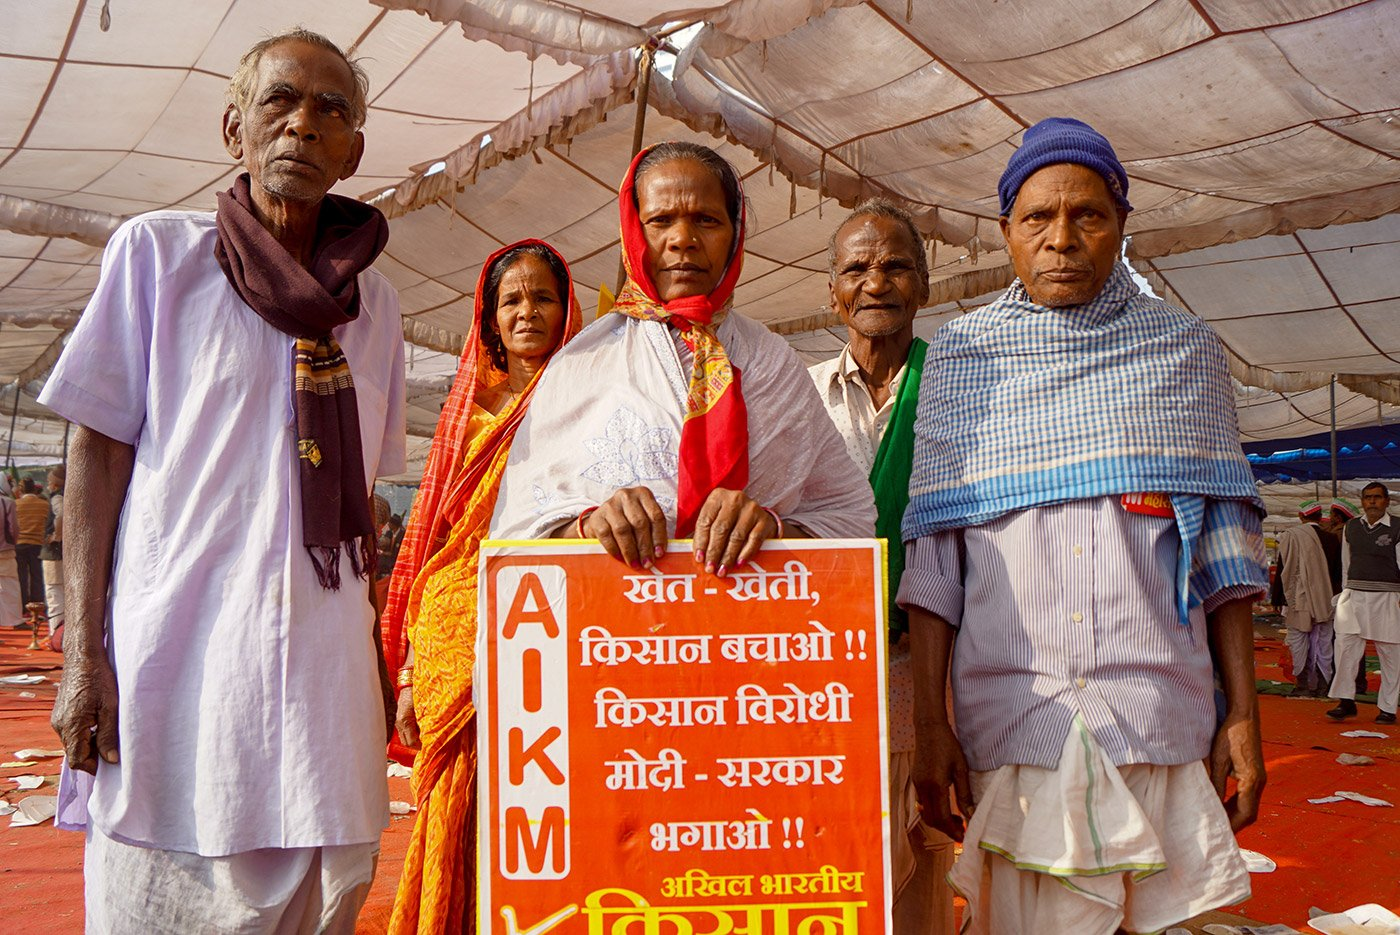 A group of farmers demanding rights